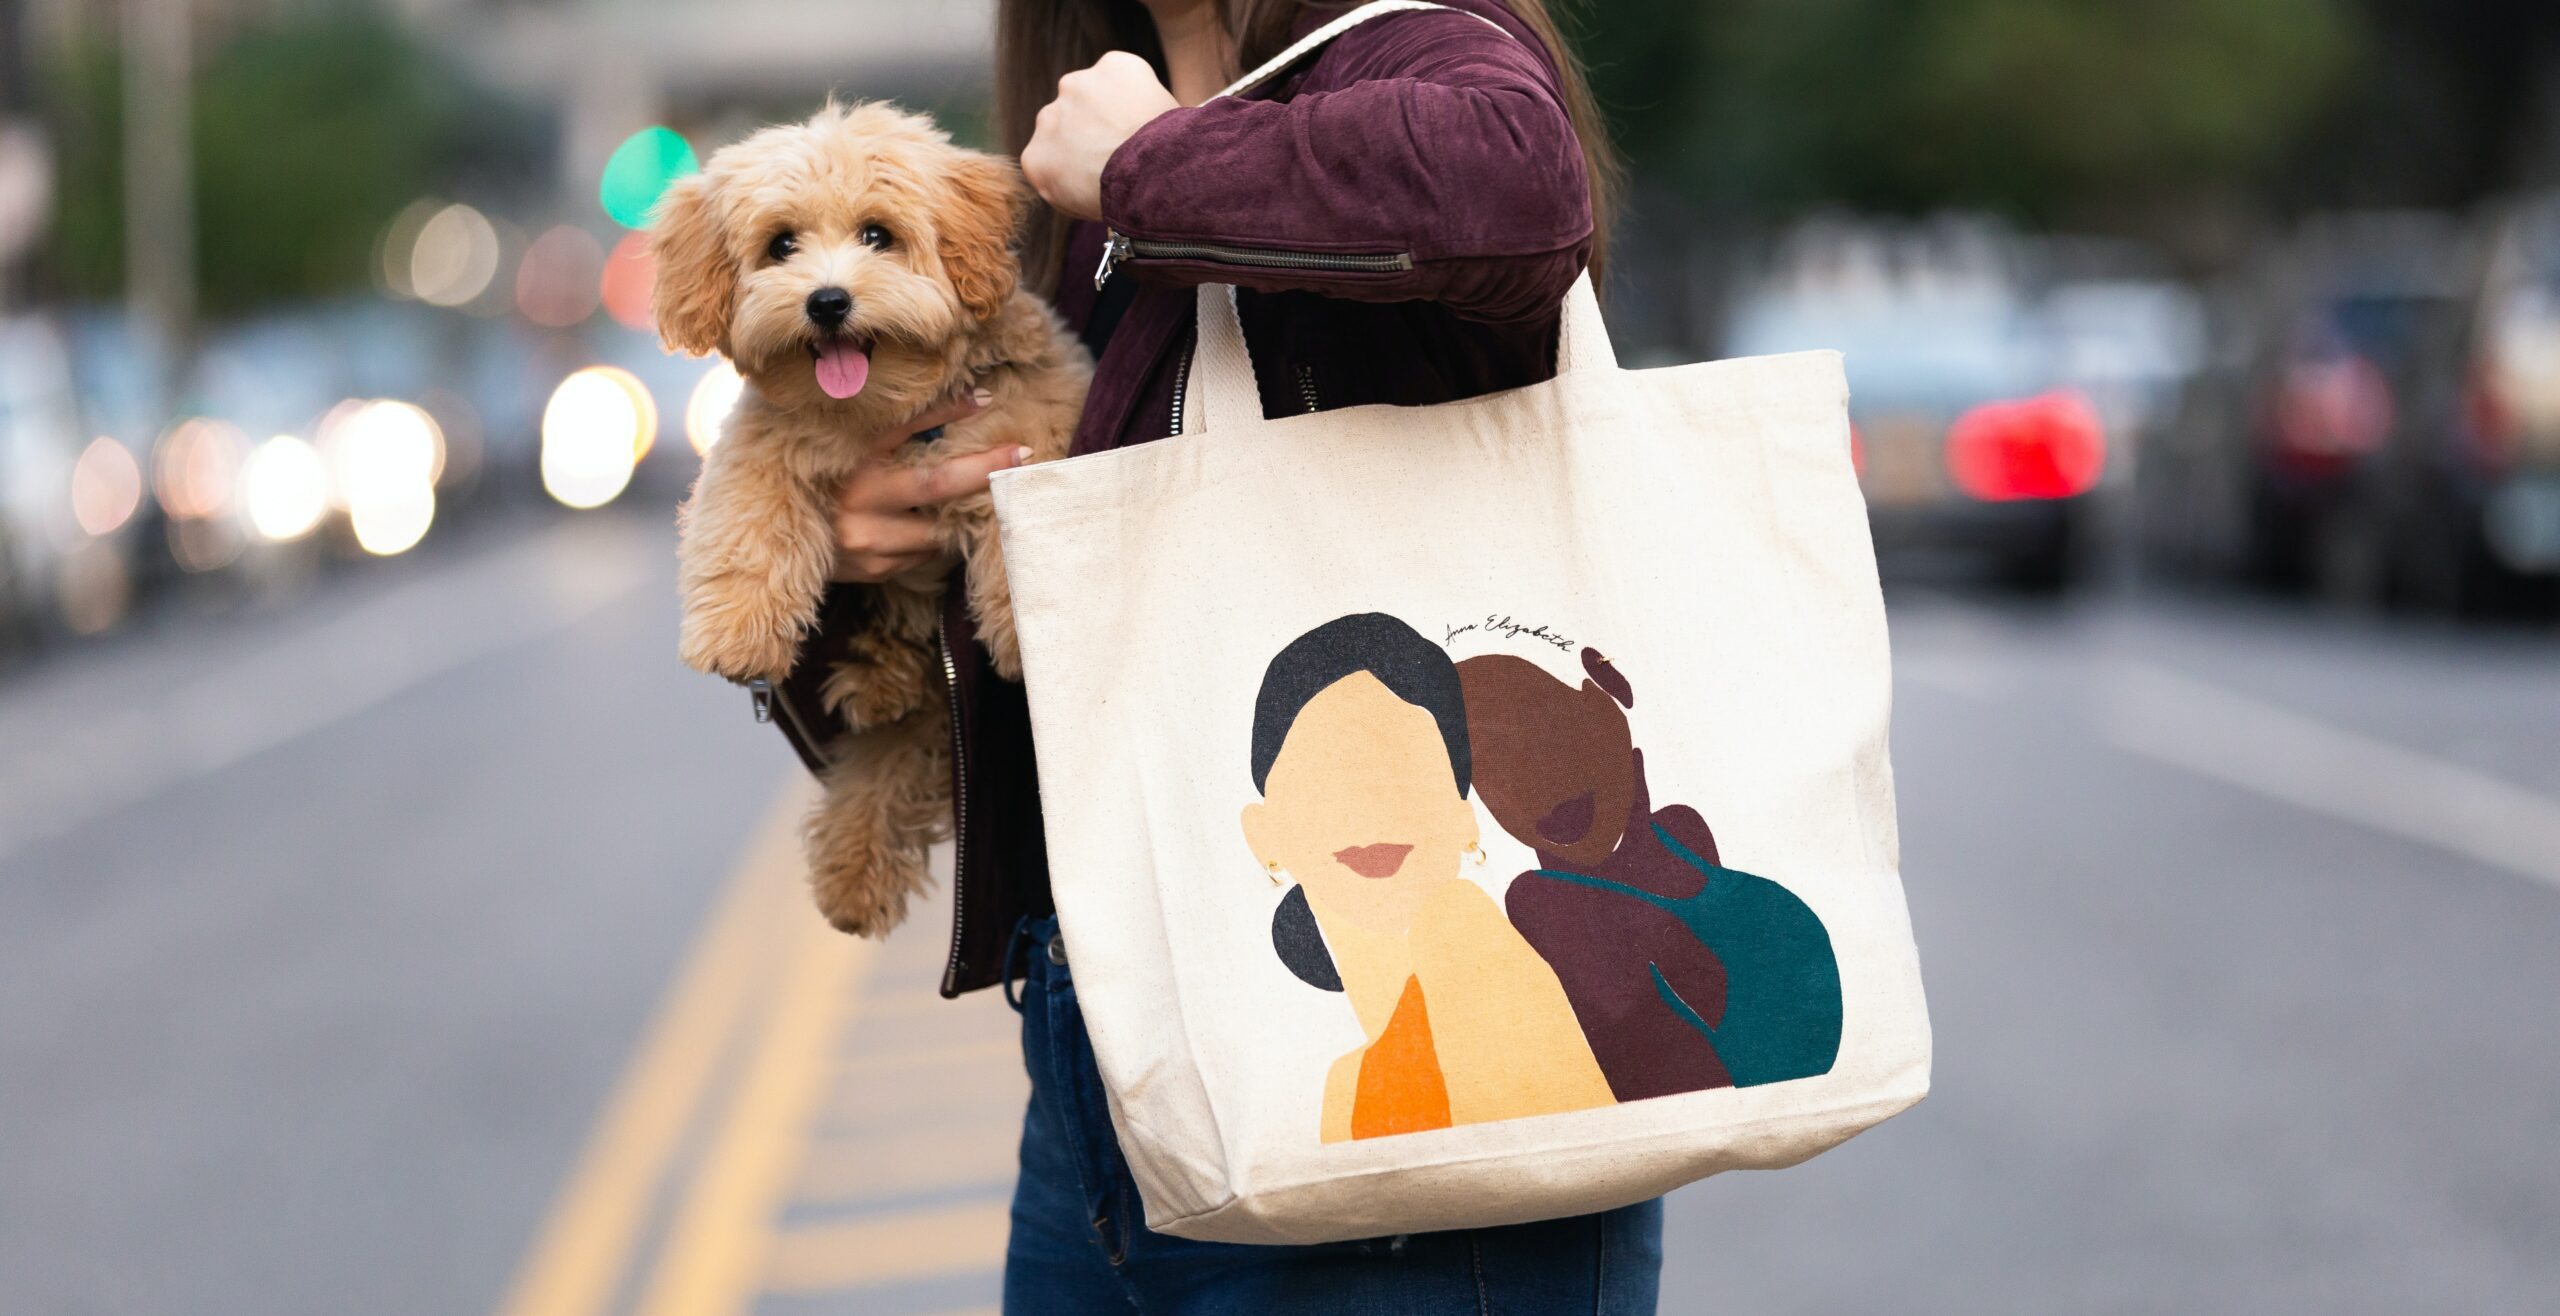 a teacher with her dog and totebag